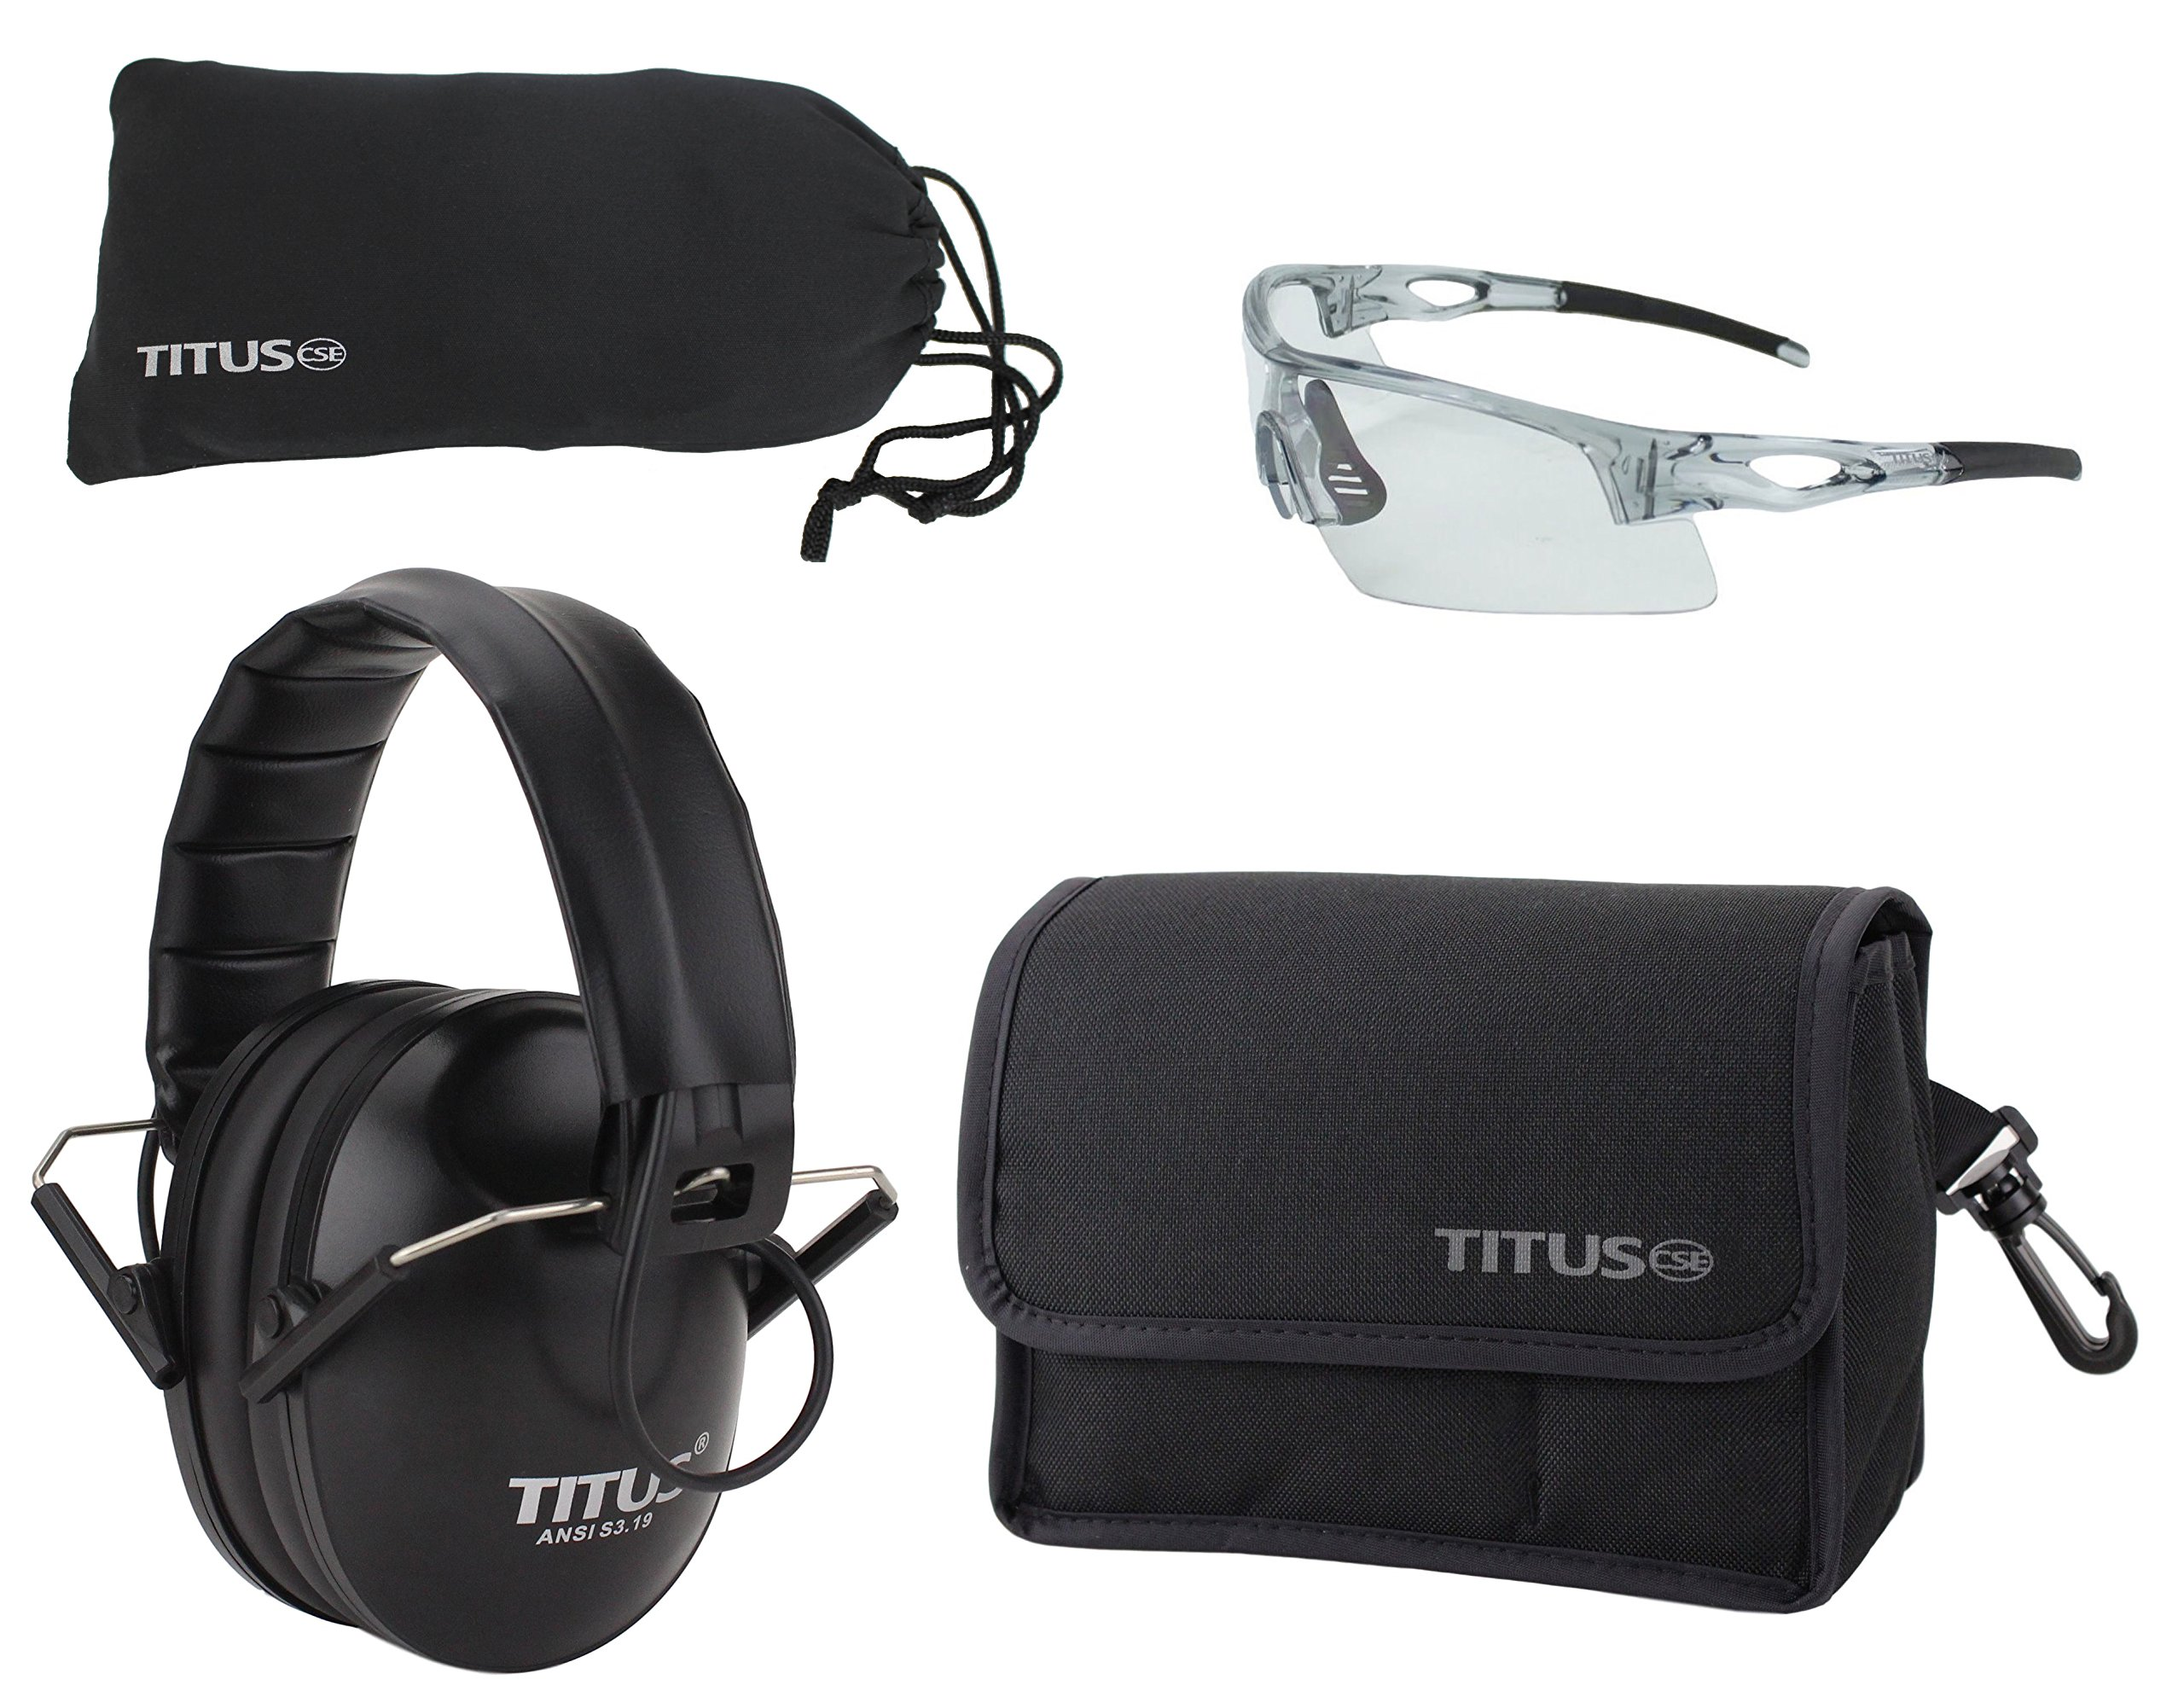 TITUS Top Combos: Safety Earmuffs & Glasses (Black Electronic - Slim, Z87.1 Clear All-Sport)